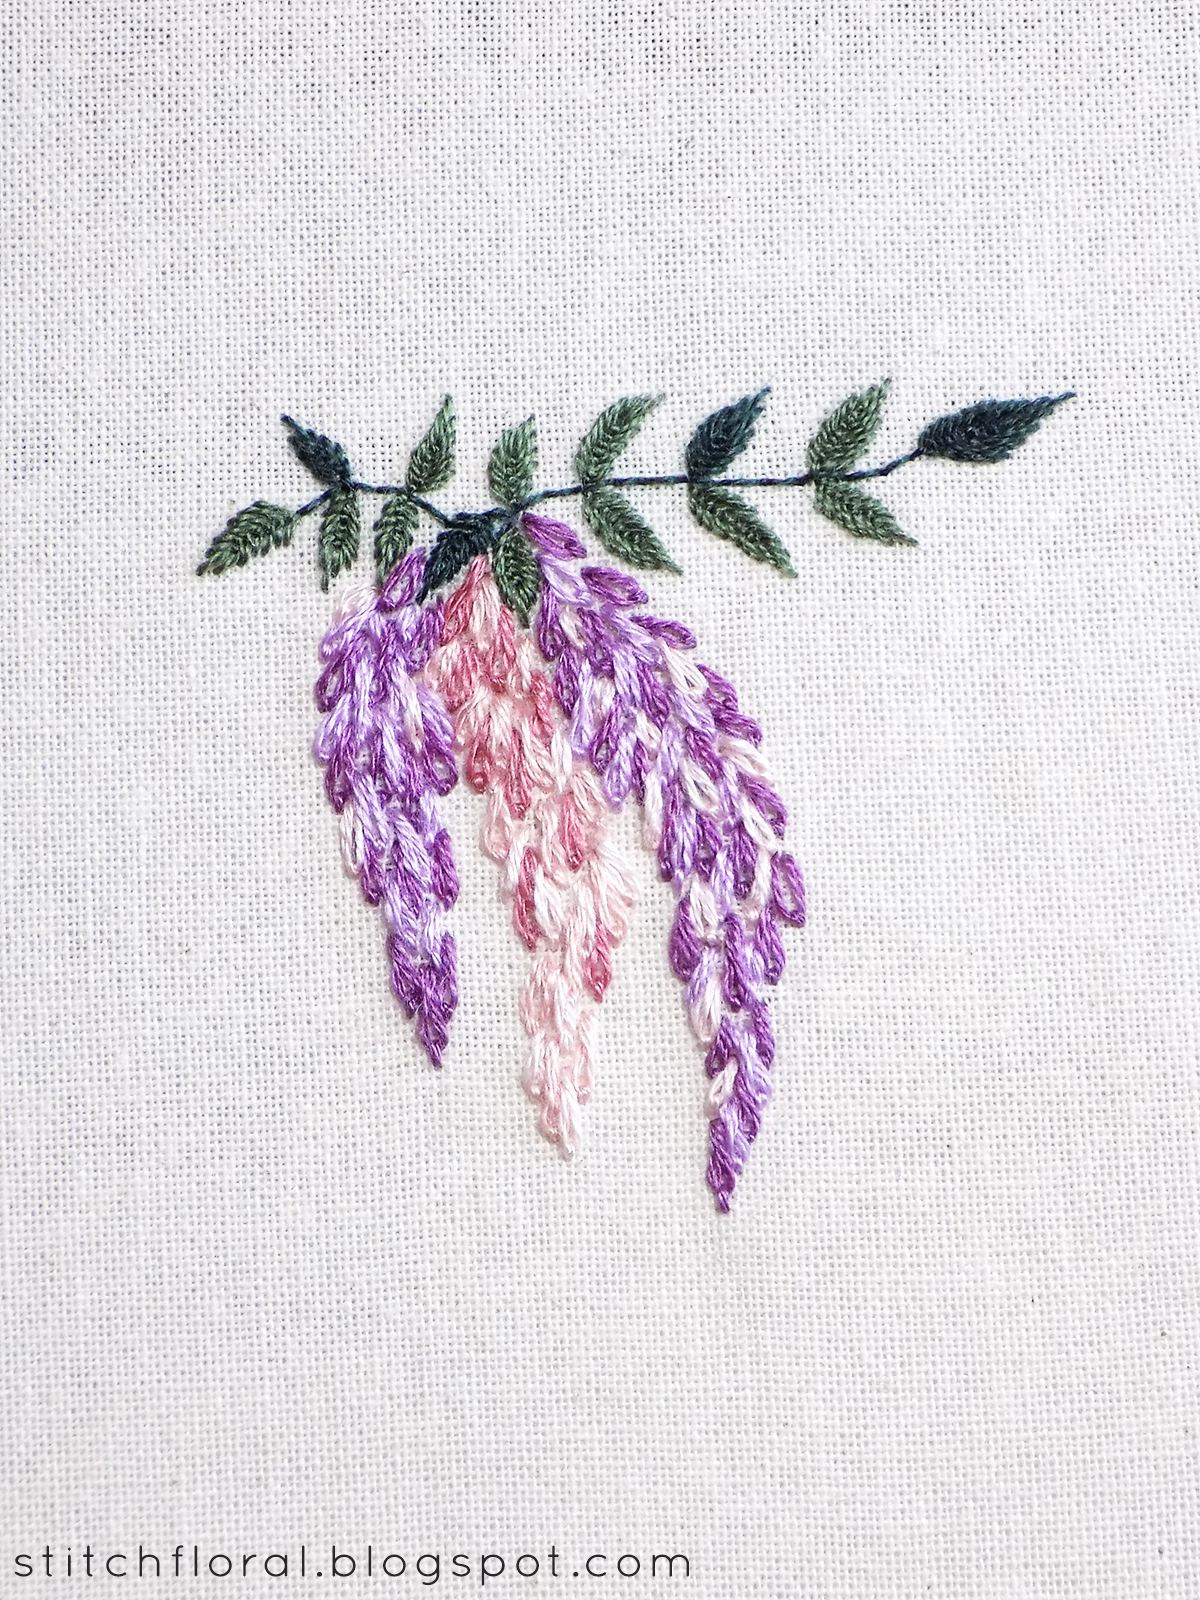 Hand Embroidery Alphabet Patterns Free Hand Embroidered Wisteria Free Pdf Pattern Tutorial Stitch Floral